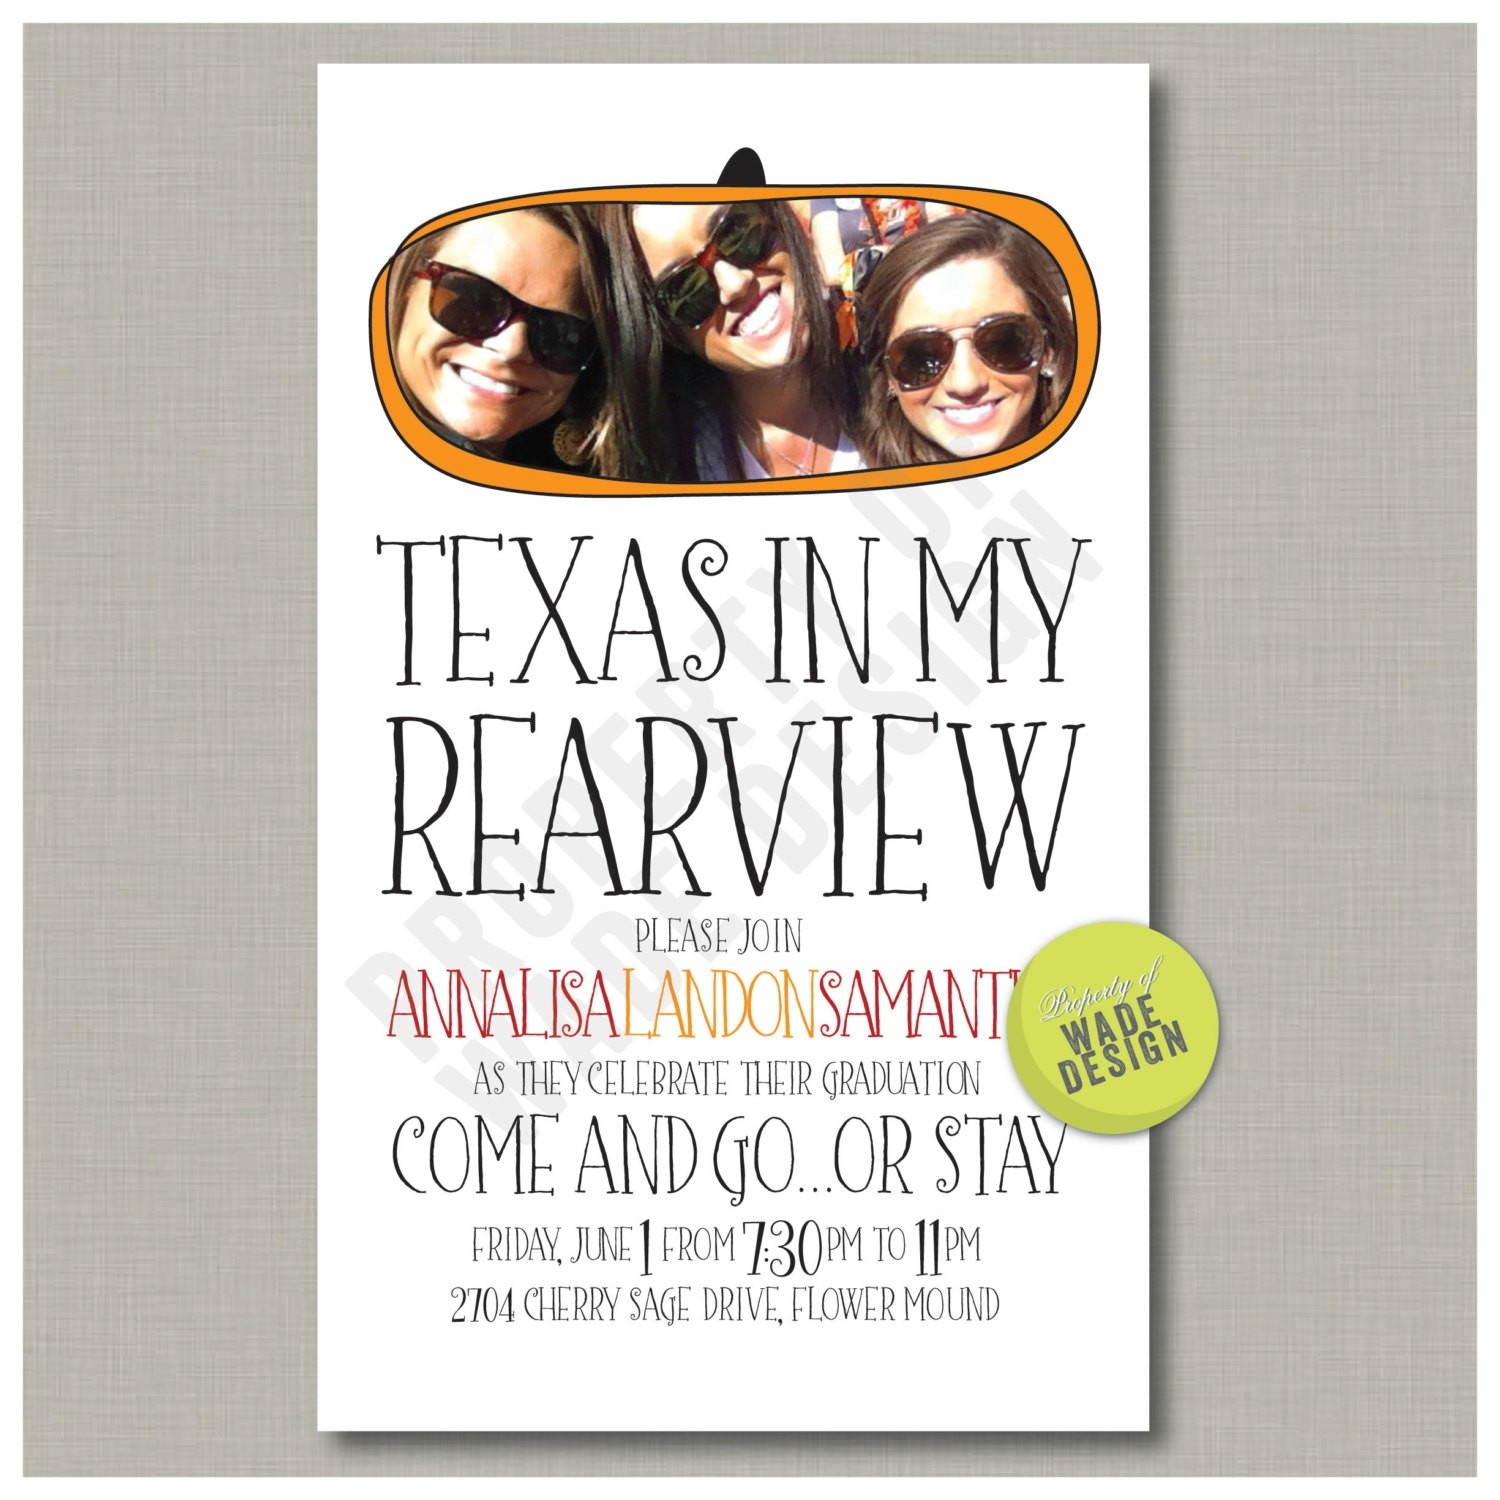 10 most popular ideas for going away party 10 most popular ideas for going away party funny invitation wording for farewell party best chic stopboris Choice Image